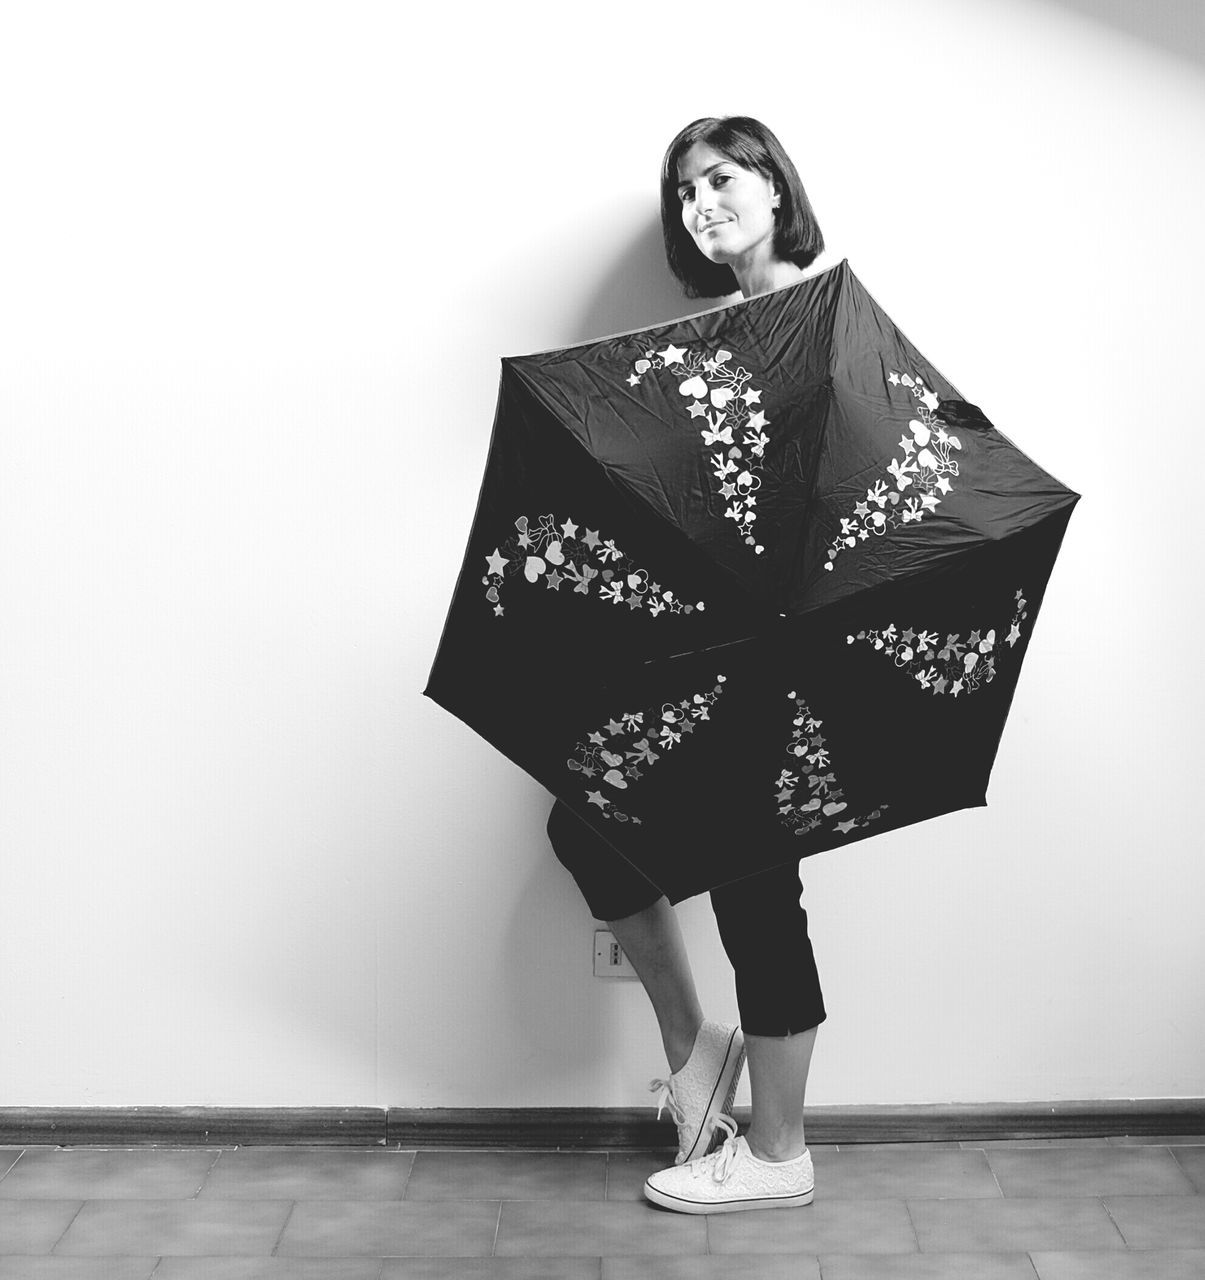 Full Length Of Woman Holding Umbrella While Standing By Wall